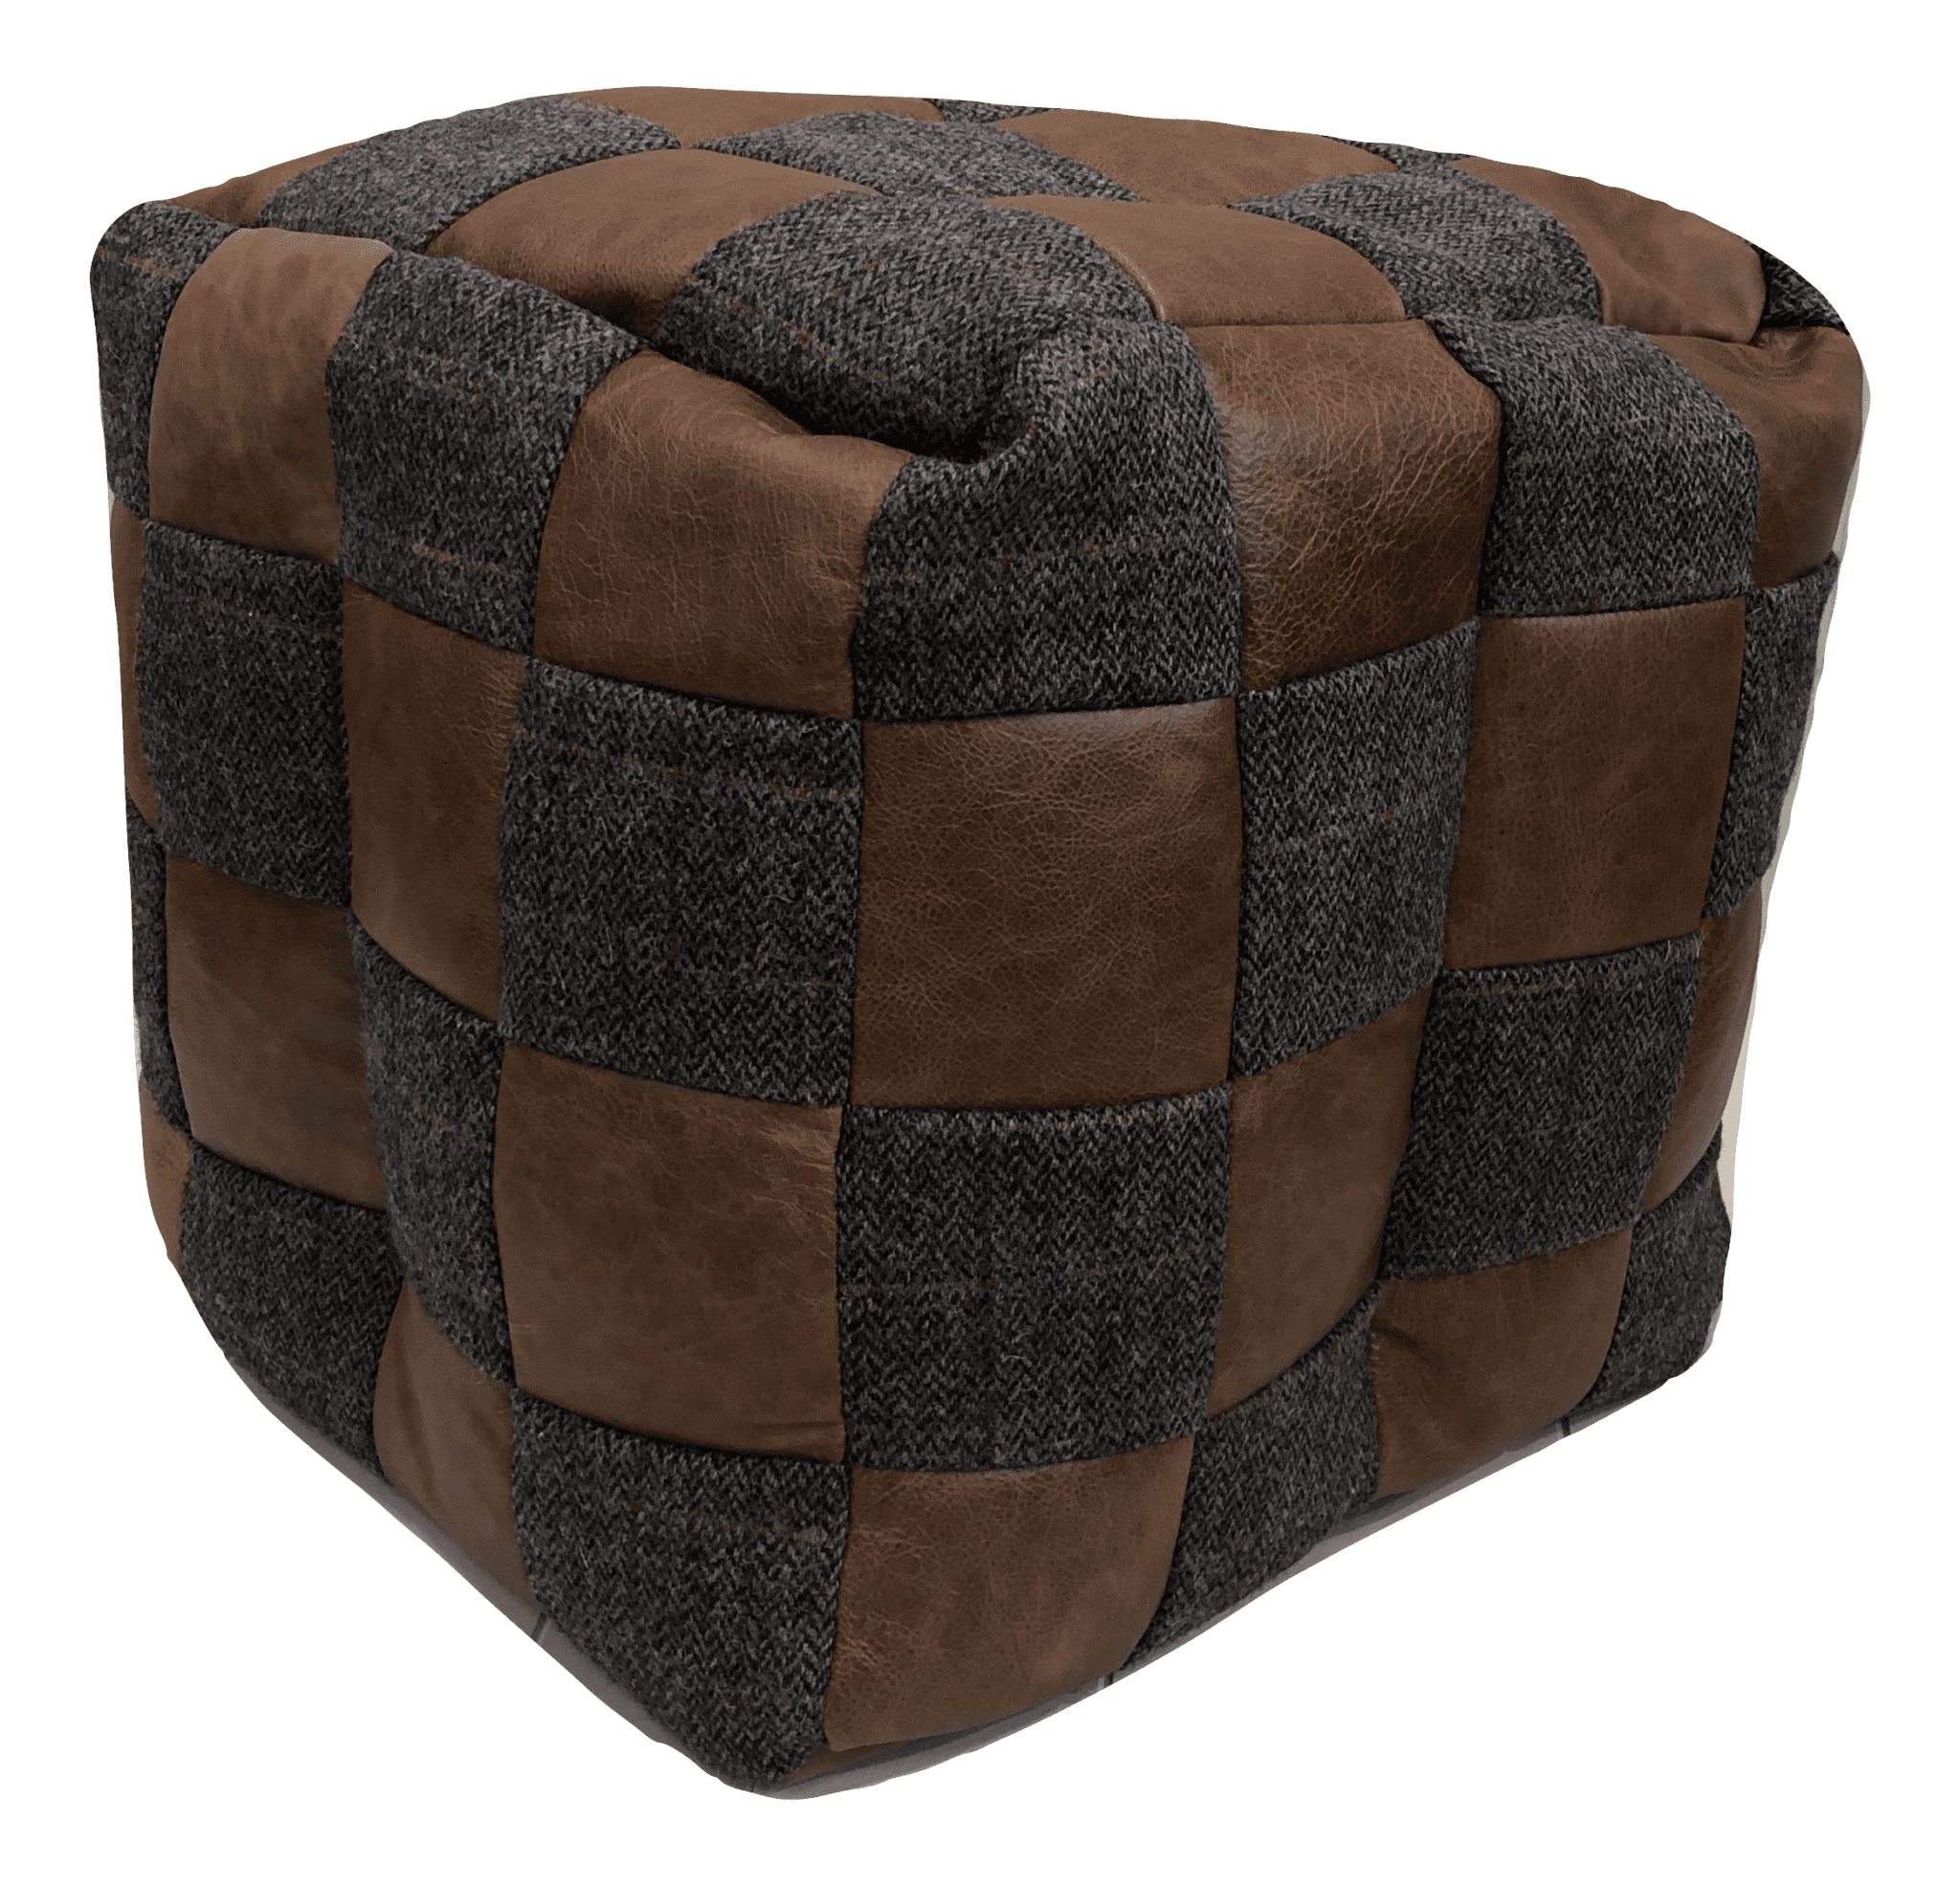 Moreland tweed square footstool beanbag with contrasting leather